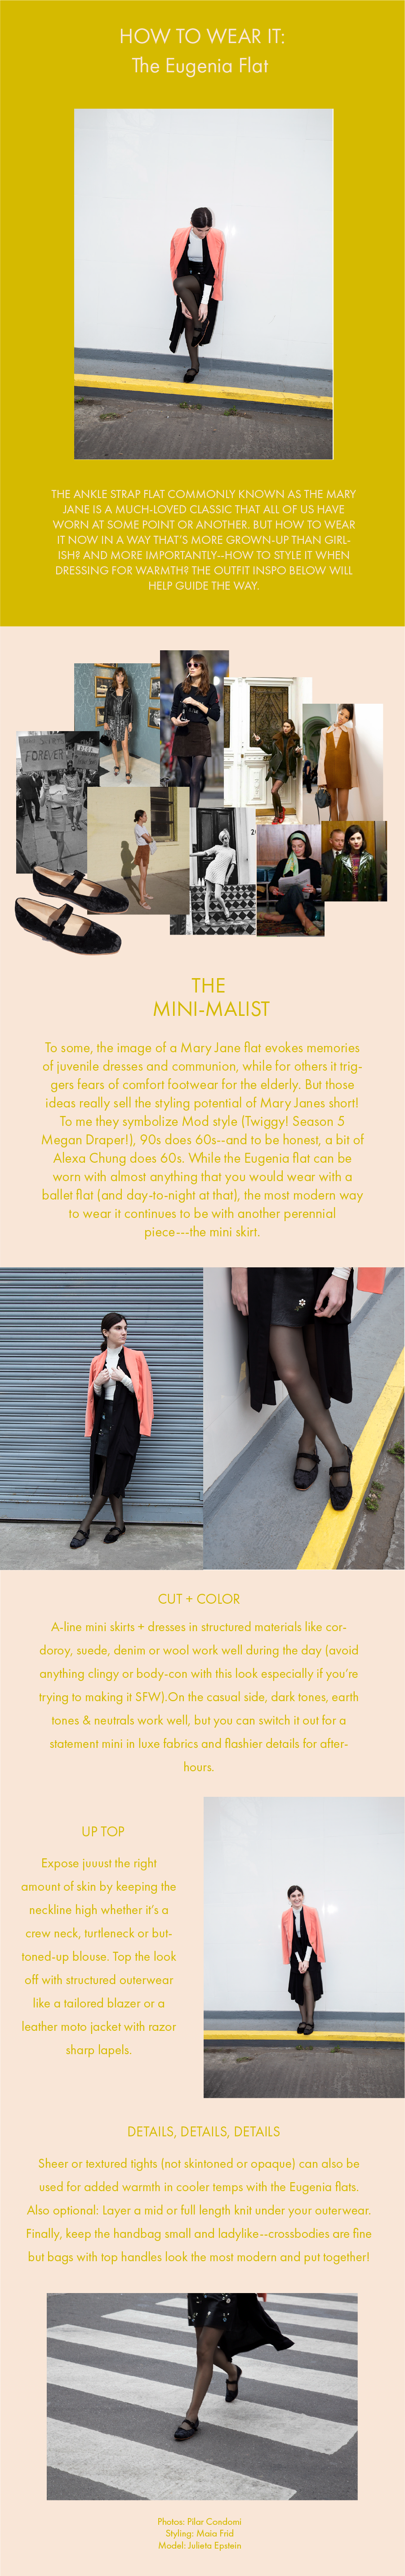 How to Wear it: The Eugenia Flat